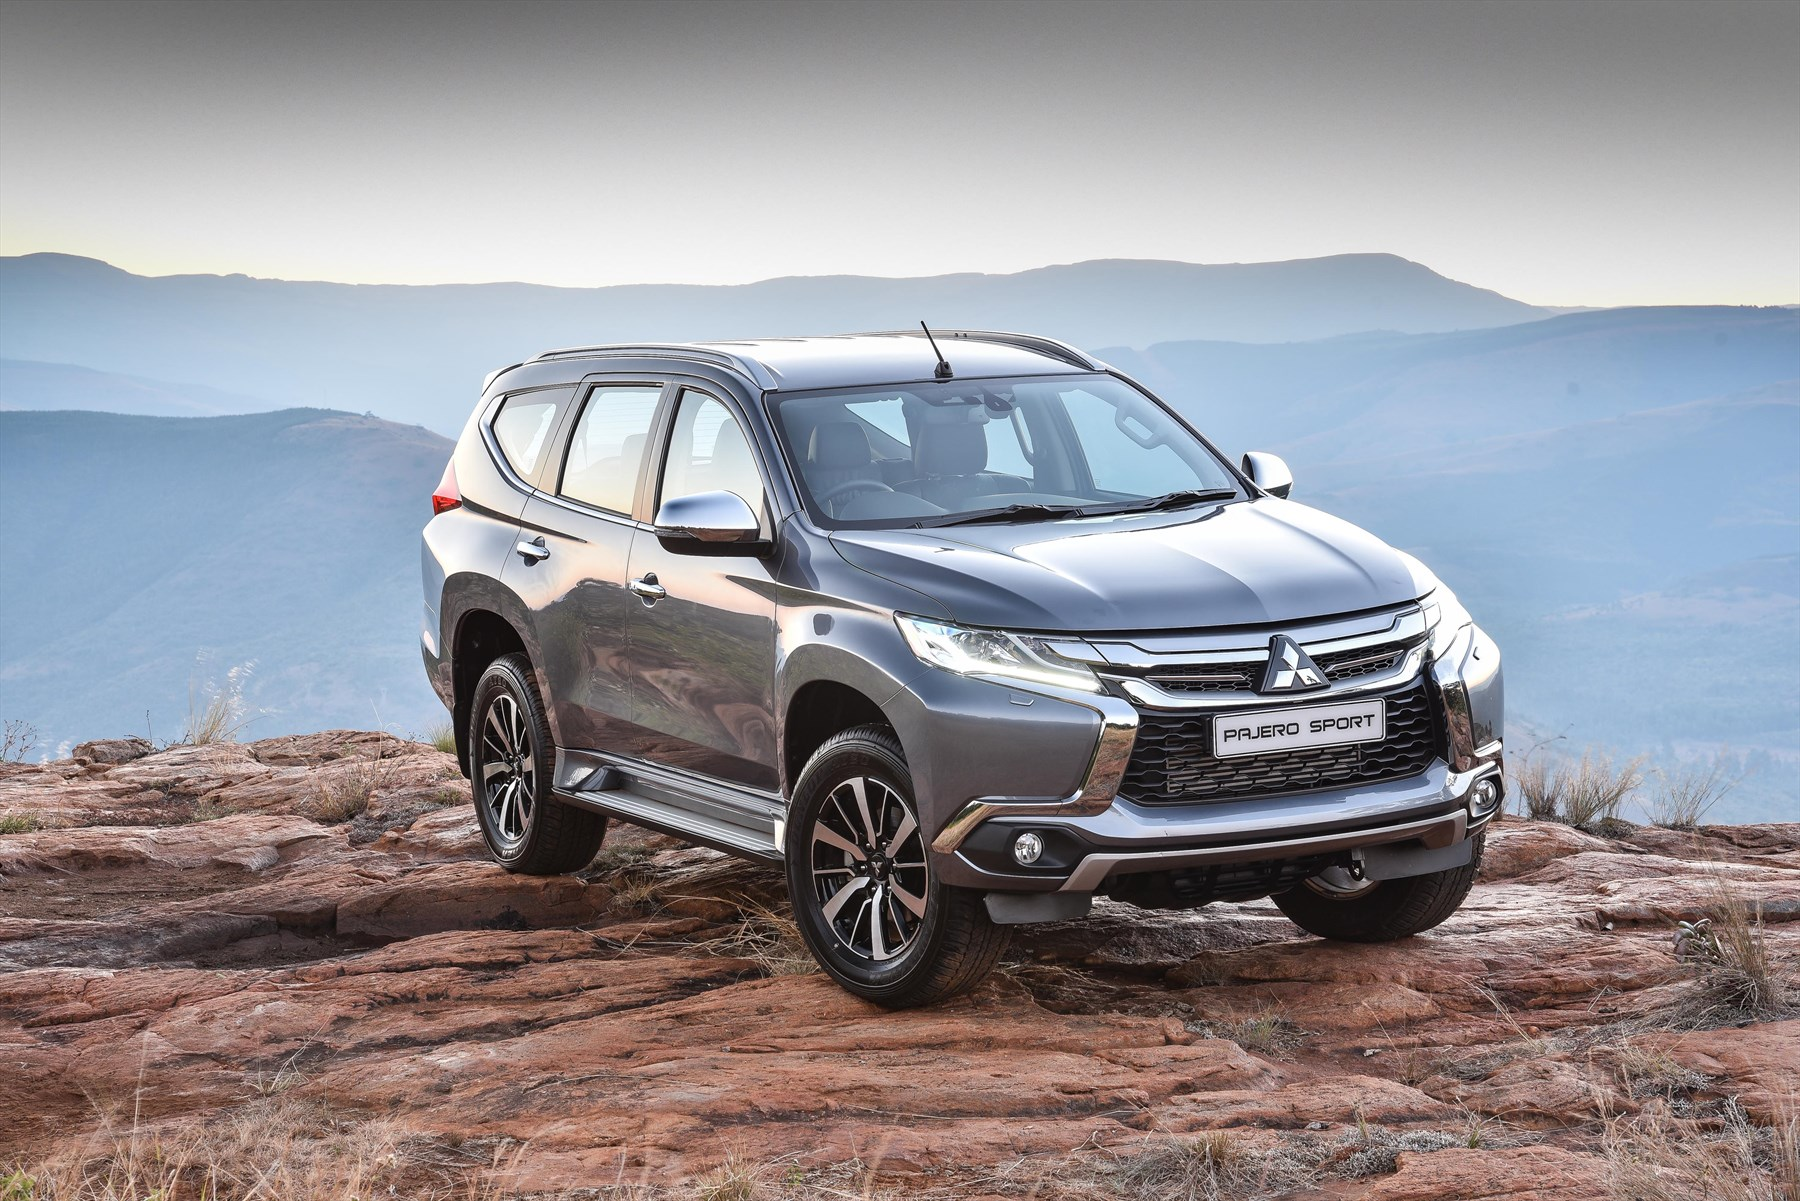 The long-awaited Mitsubishi Pajero Sport, punching way above its weight  thanks to an array of cutting-edge technological enhancements, has arrived.